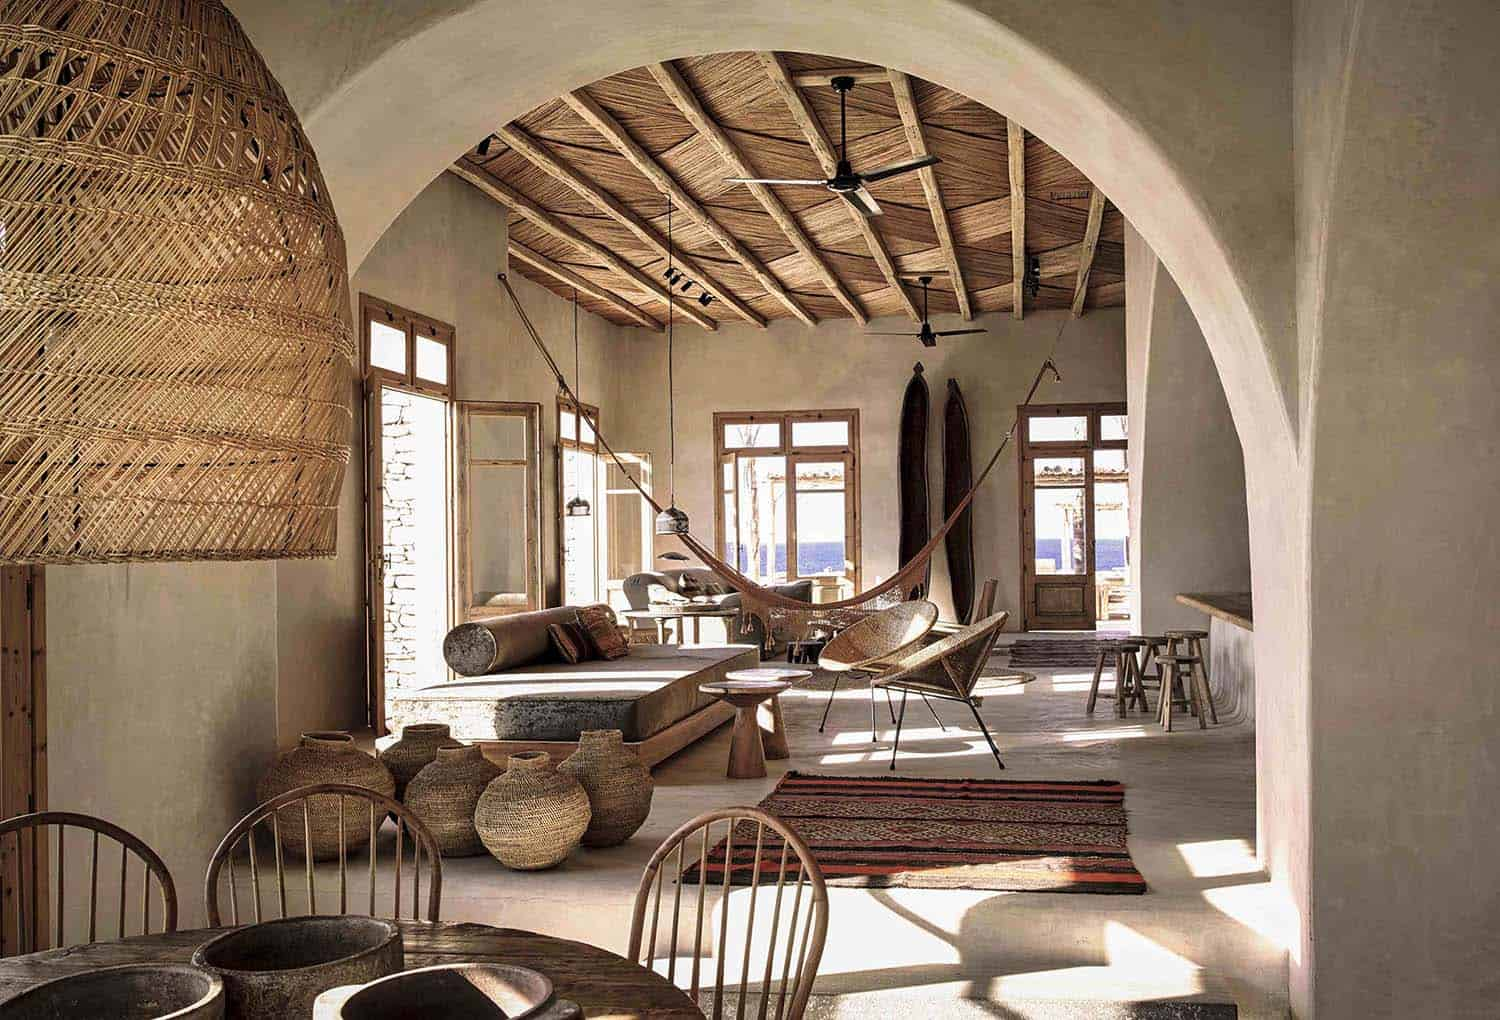 scorpios-mykonos-k-studio-architects-05-1-kindesign